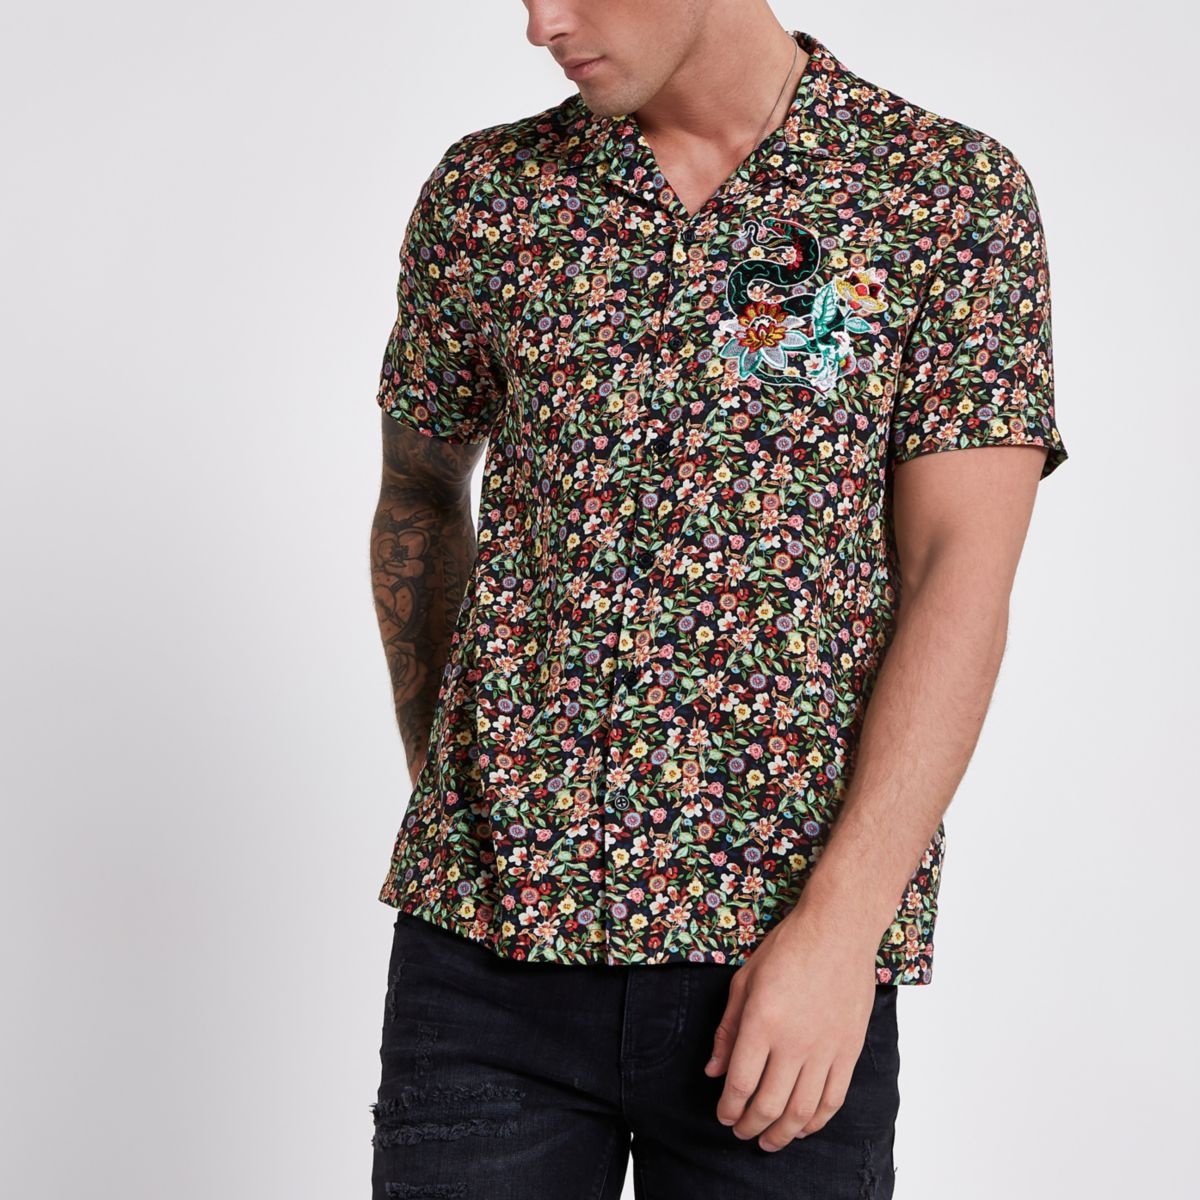 Find mens floral shirts at ShopStyle. Shop the latest collection of mens floral shirts from the most popular stores - all in one place.